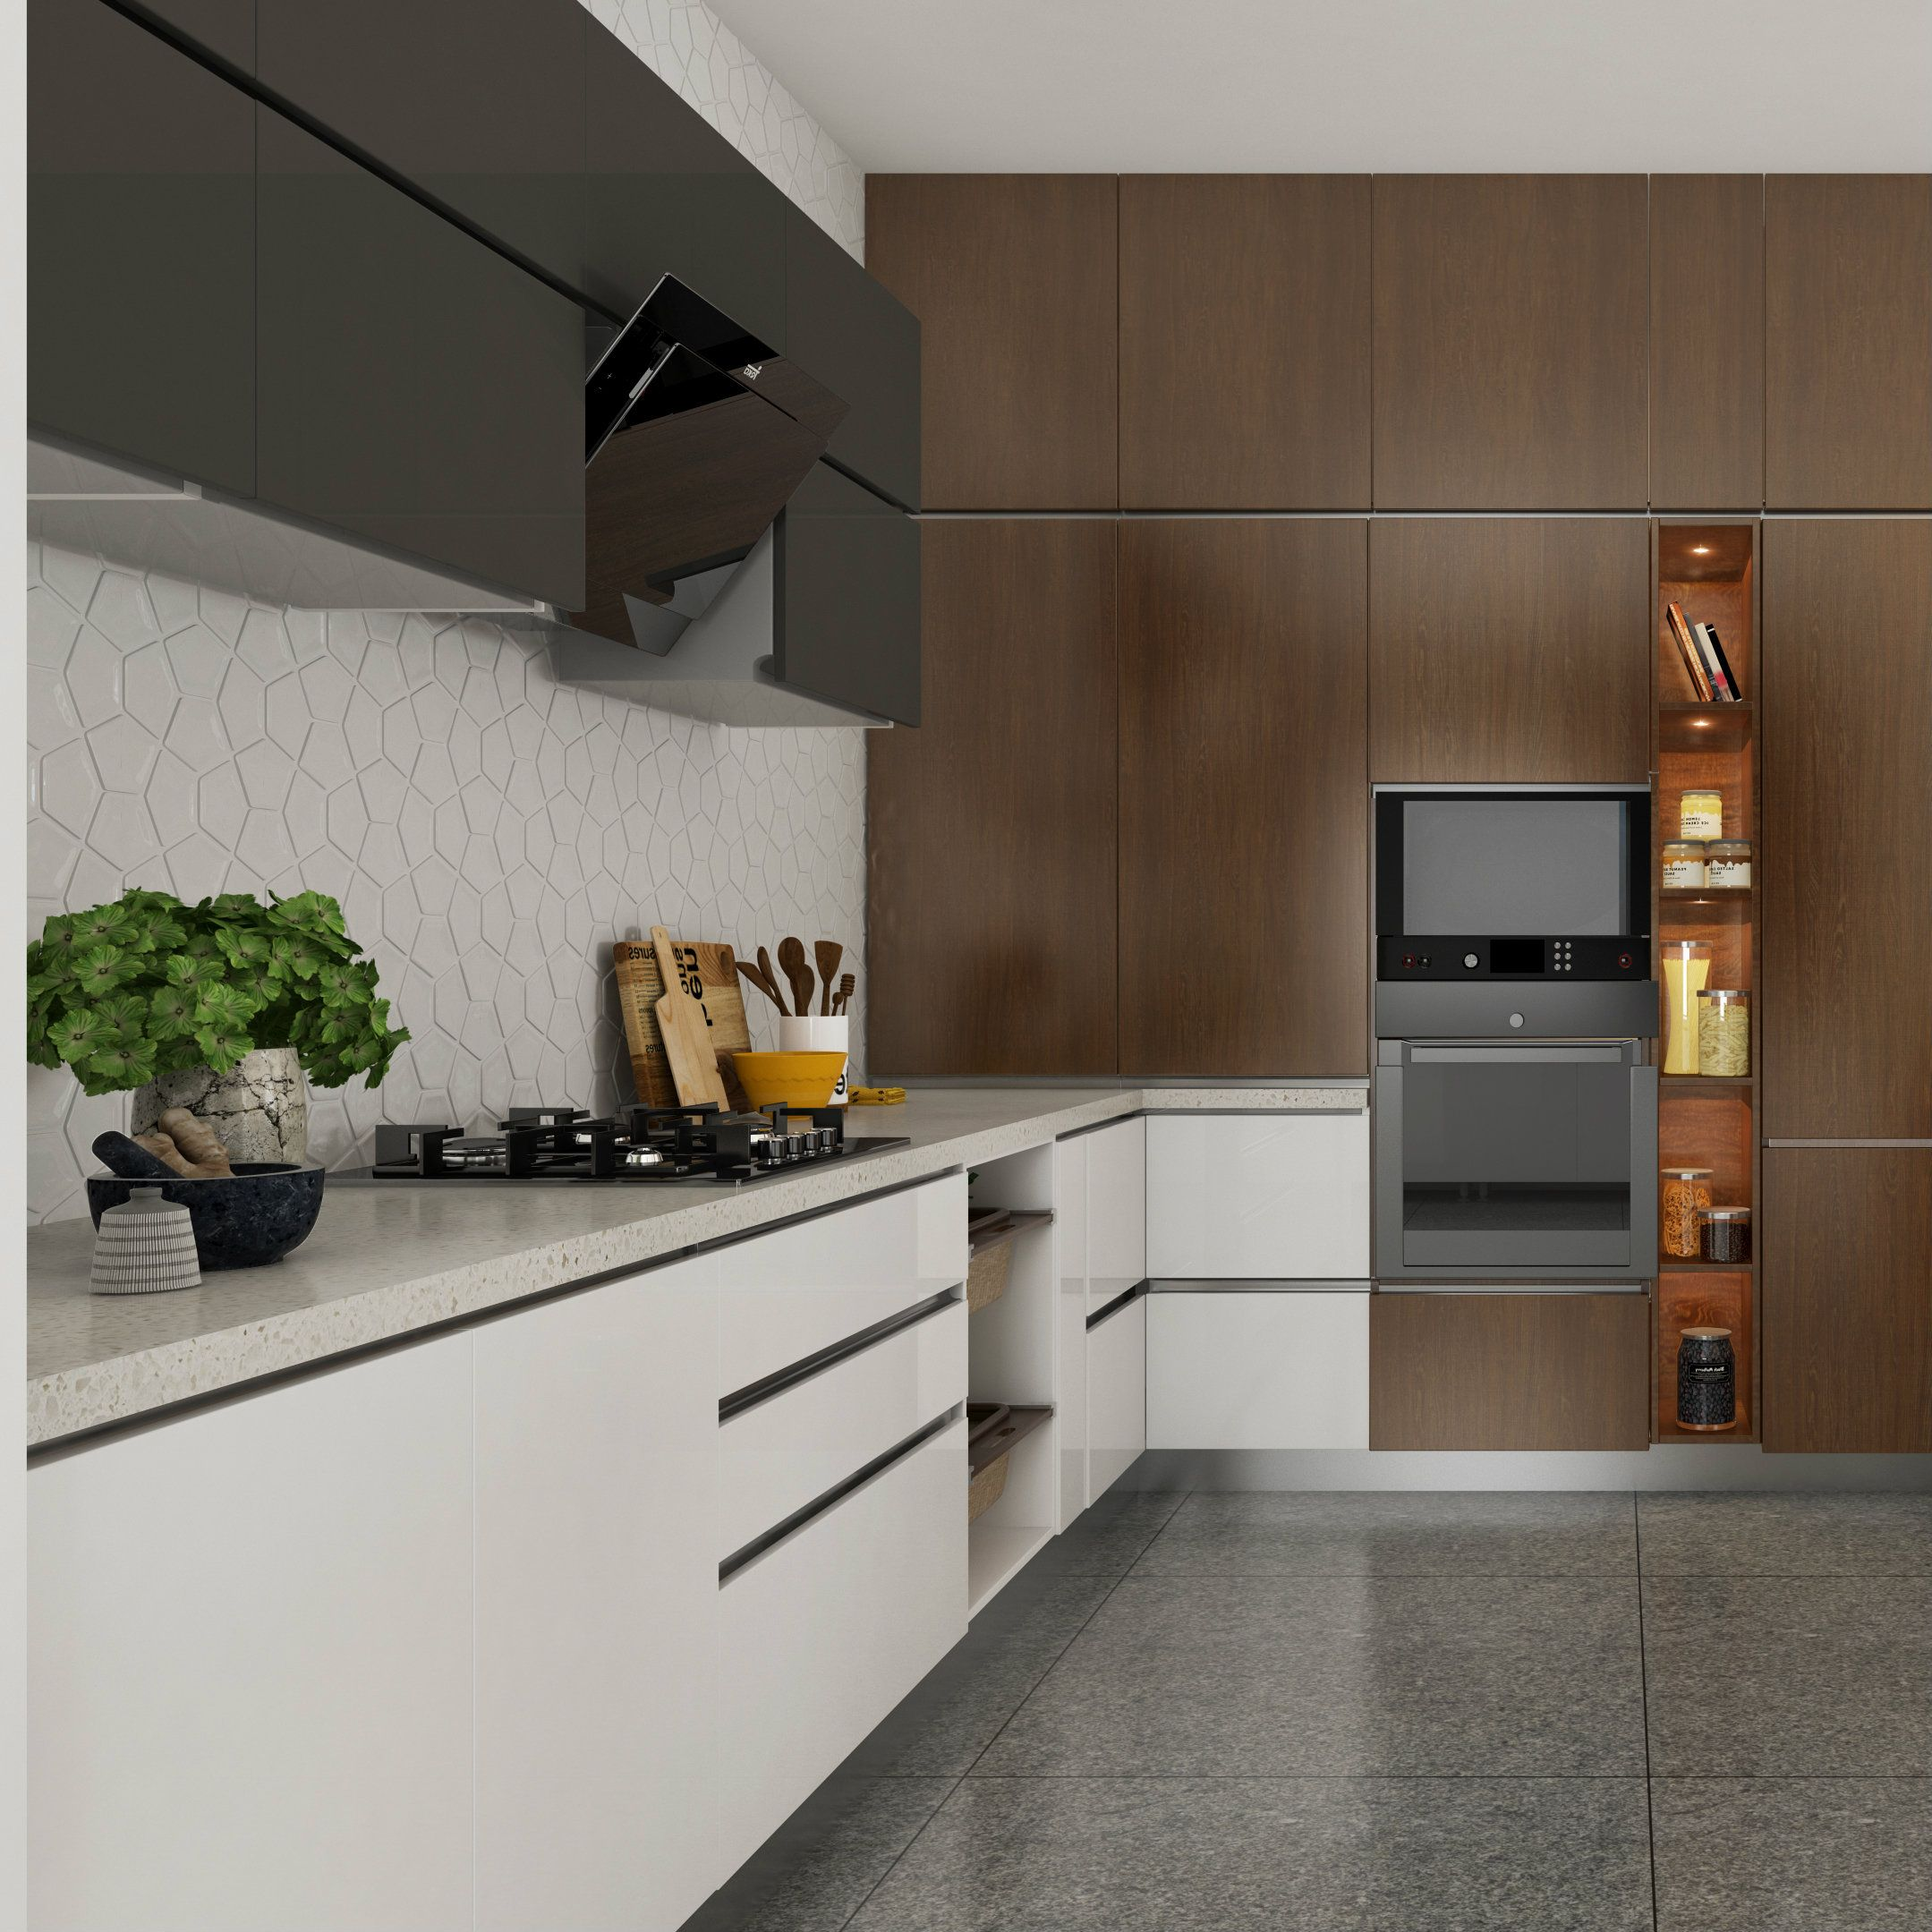 Black And White Modular Kitchen With A Wooden Accent Wall For Built In Appliances The Back Spl Accent Wall In Kitchen Interior Design Kitchen Kitchen Interior